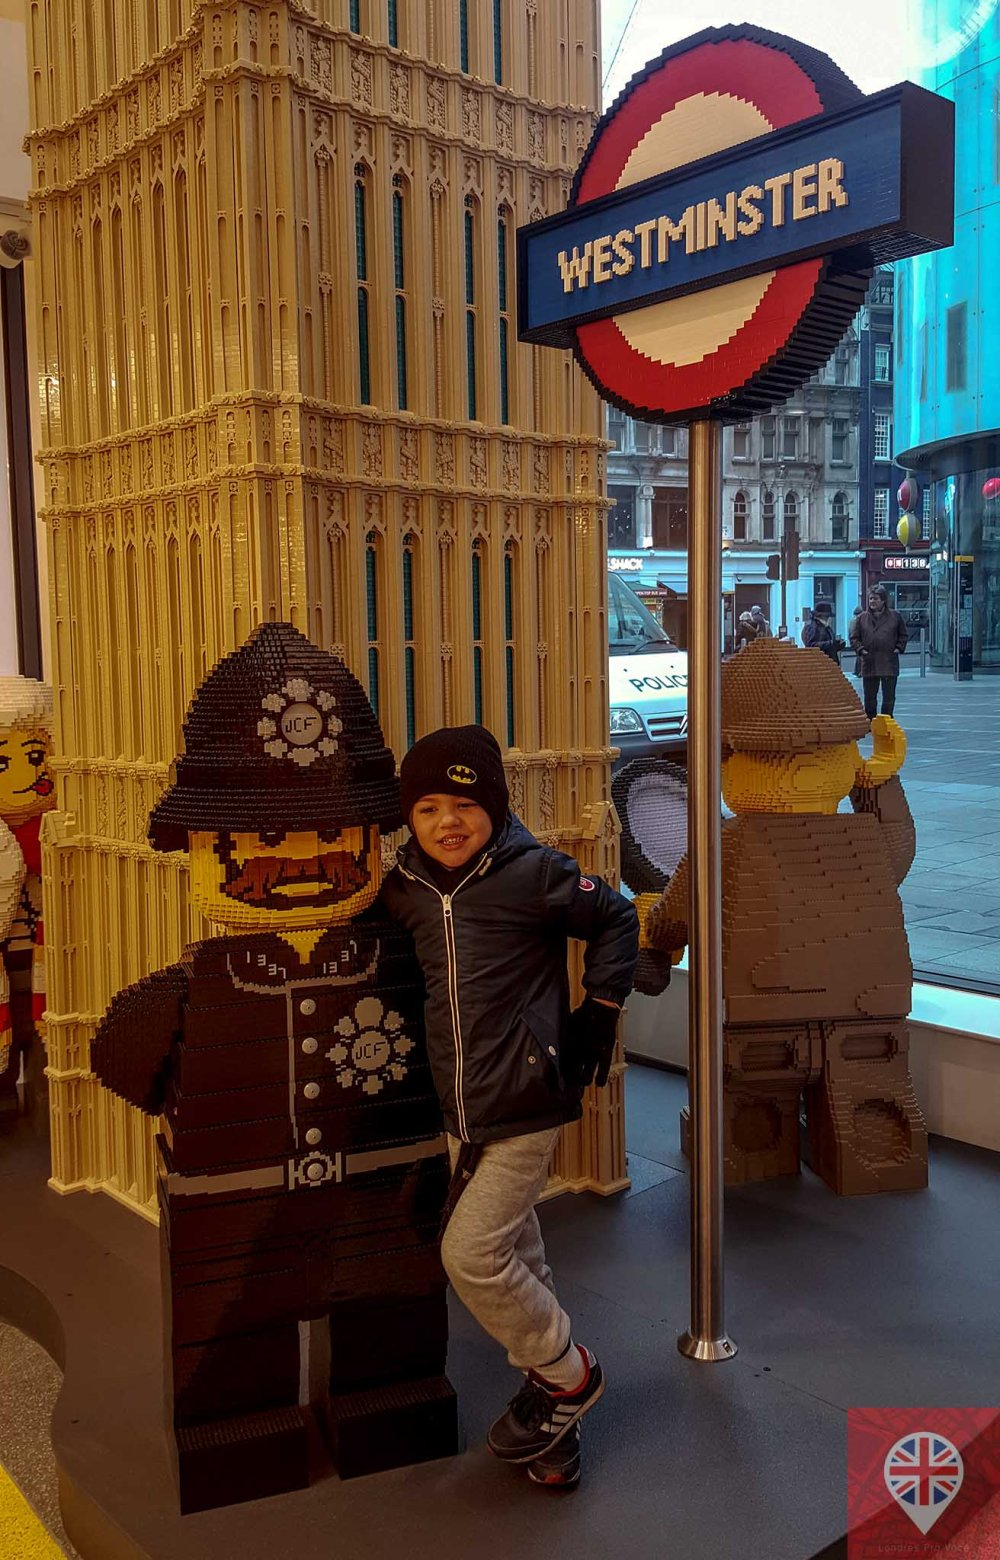 Lego store policeman